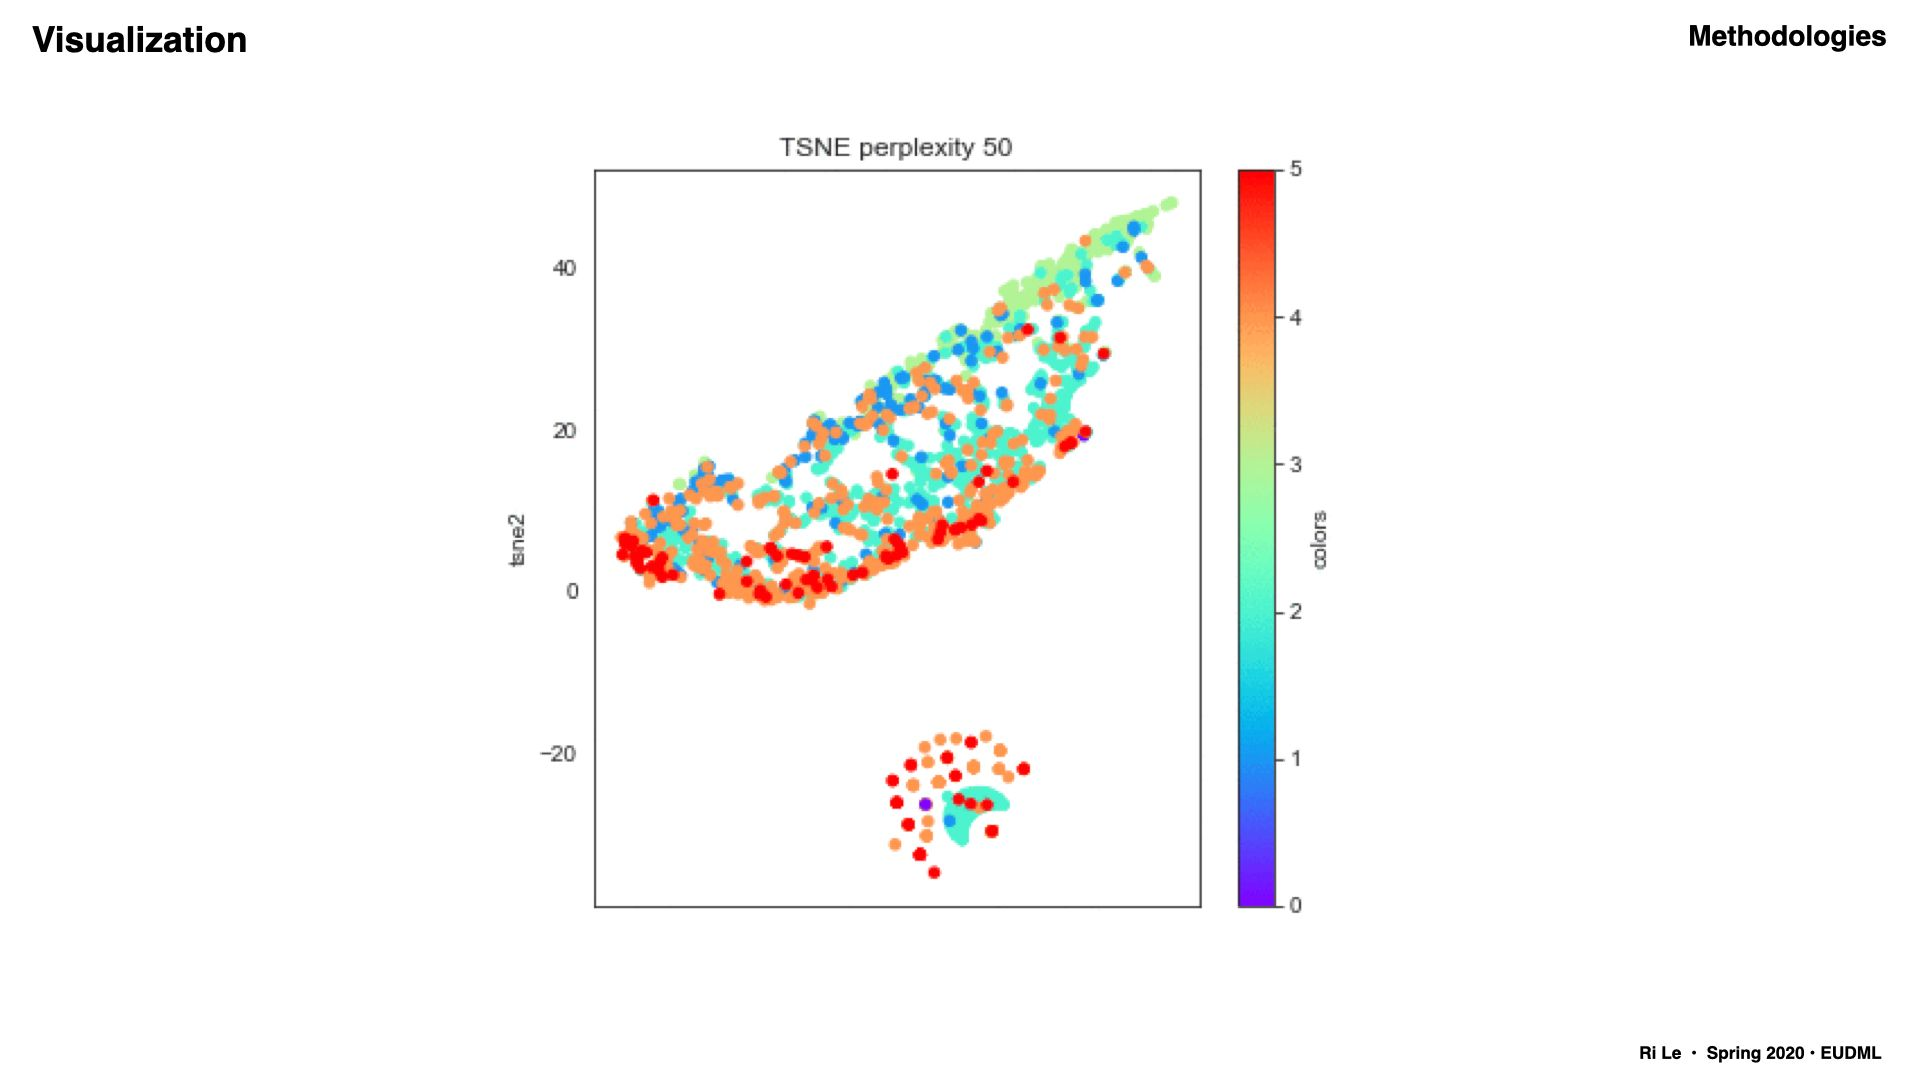 Attempts to compare TSNE with HDBSCAN clustering outputs